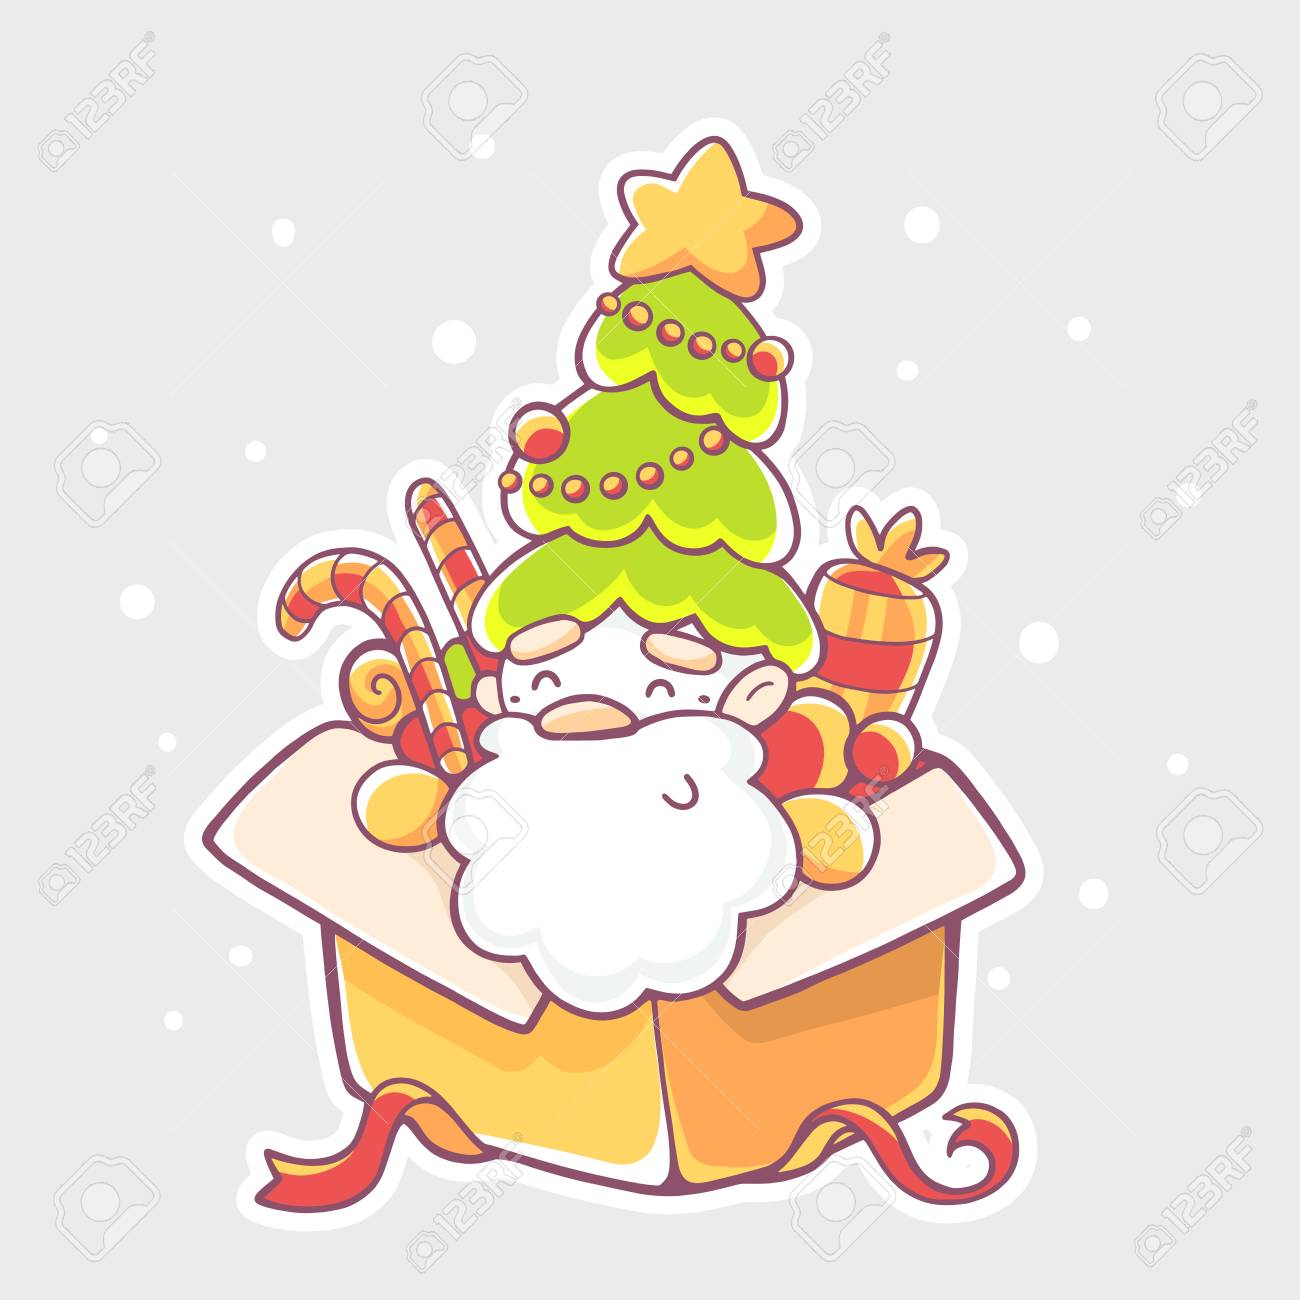 Vector Illustration Of Santa Claus Sitting In Yellow Gift Box Royalty Free Cliparts Vectors And Stock Illustration Image 49455520